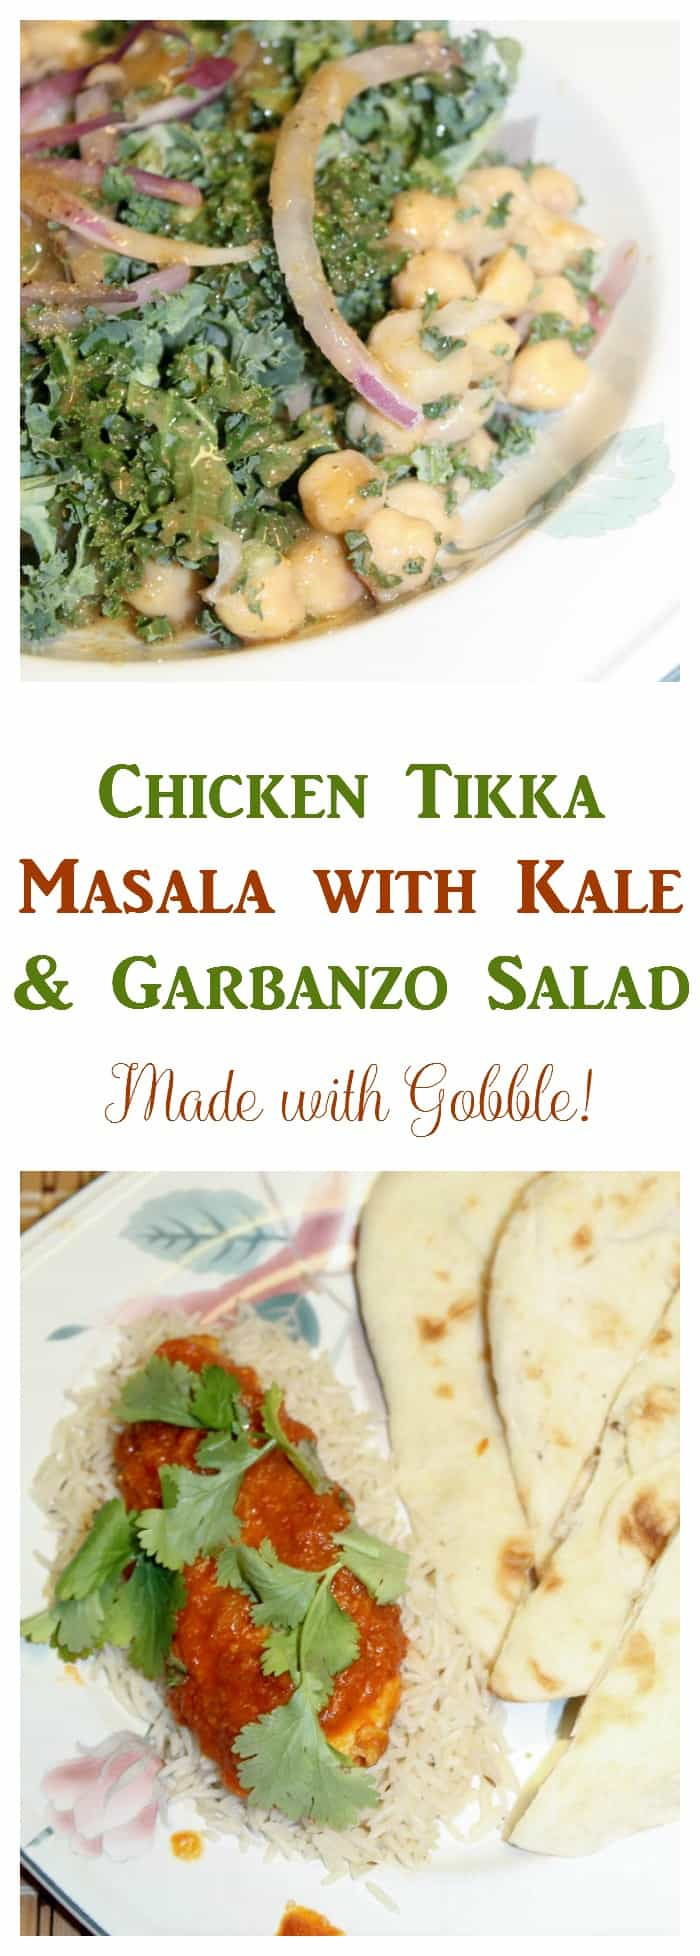 A healthy dinner on the table in 15 minutes, even if you can't cook? You betcha, thanks to Gobble! Check it out!